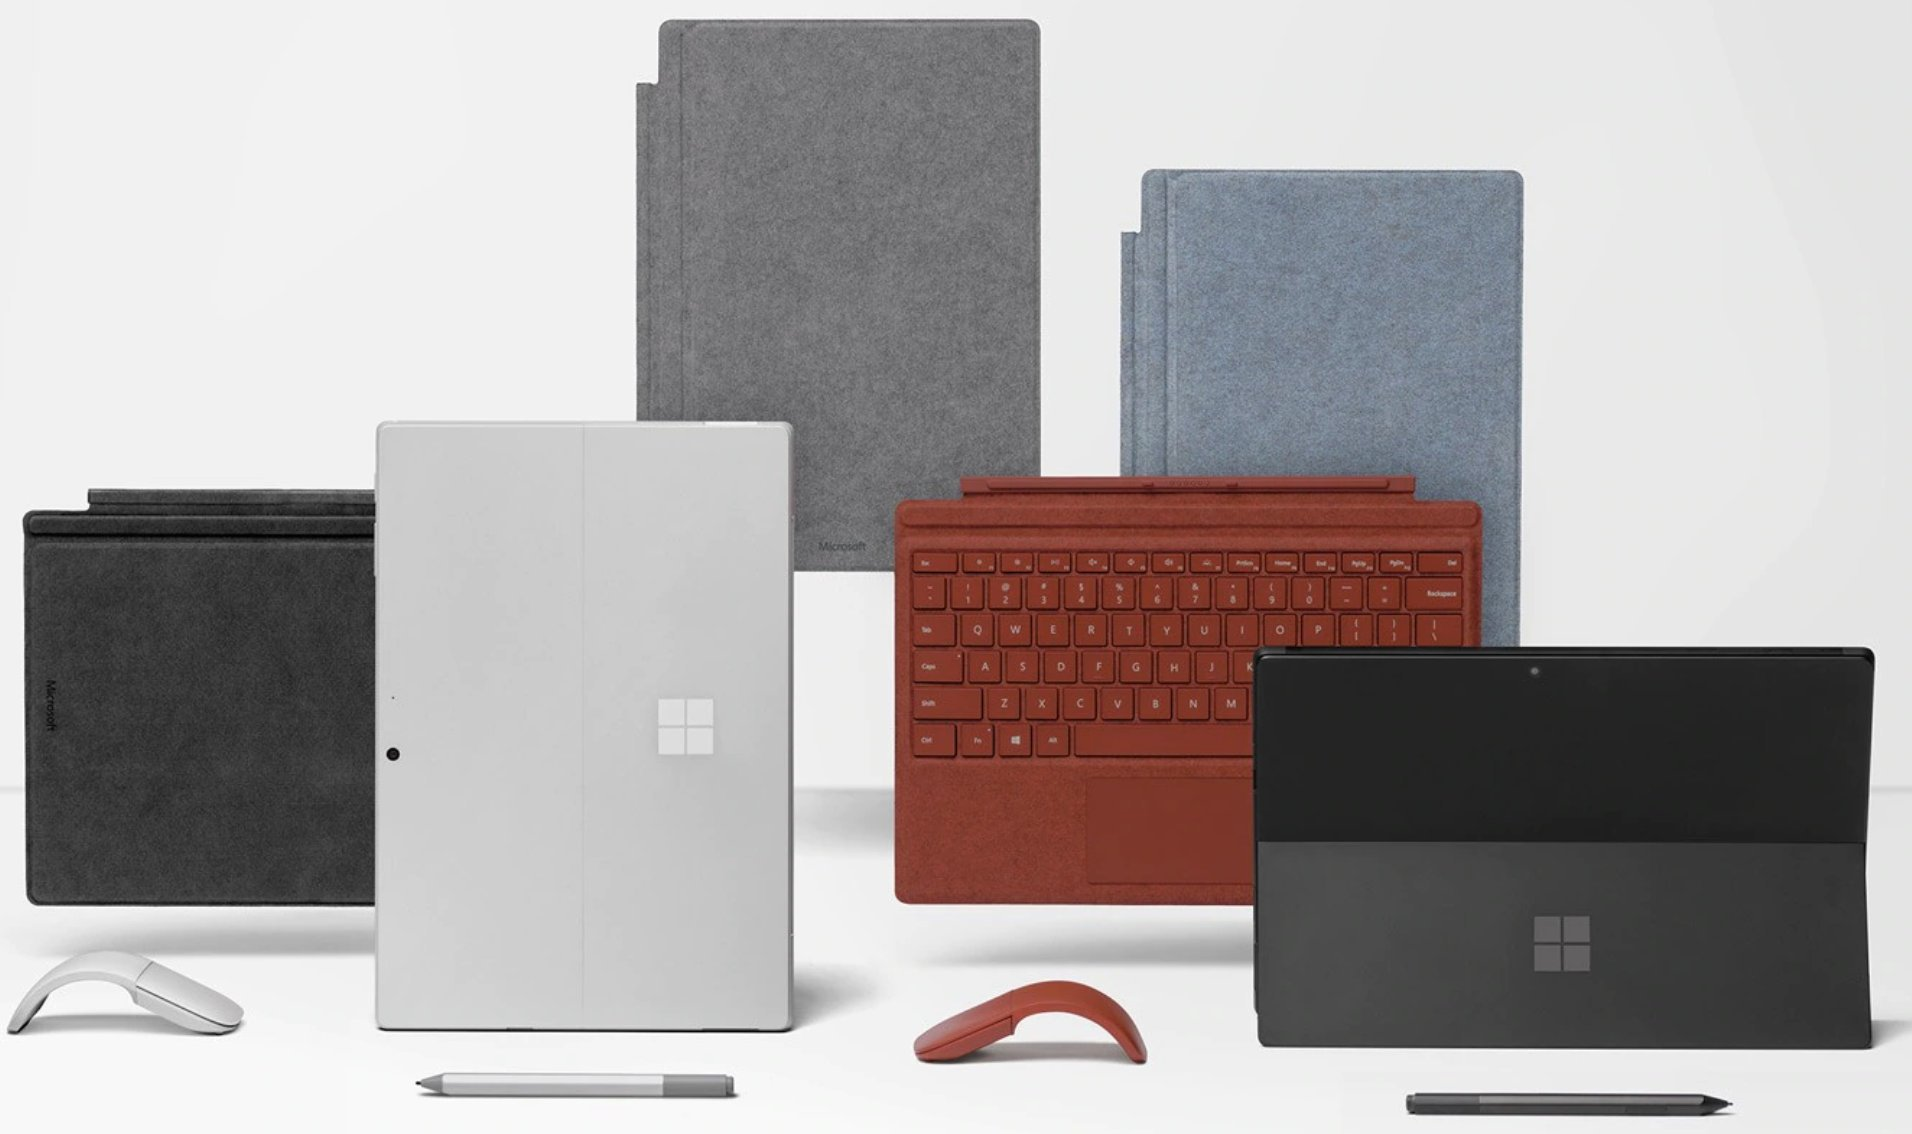 Ten laptops and convertibles to meet the demand for leisure and work at home 39